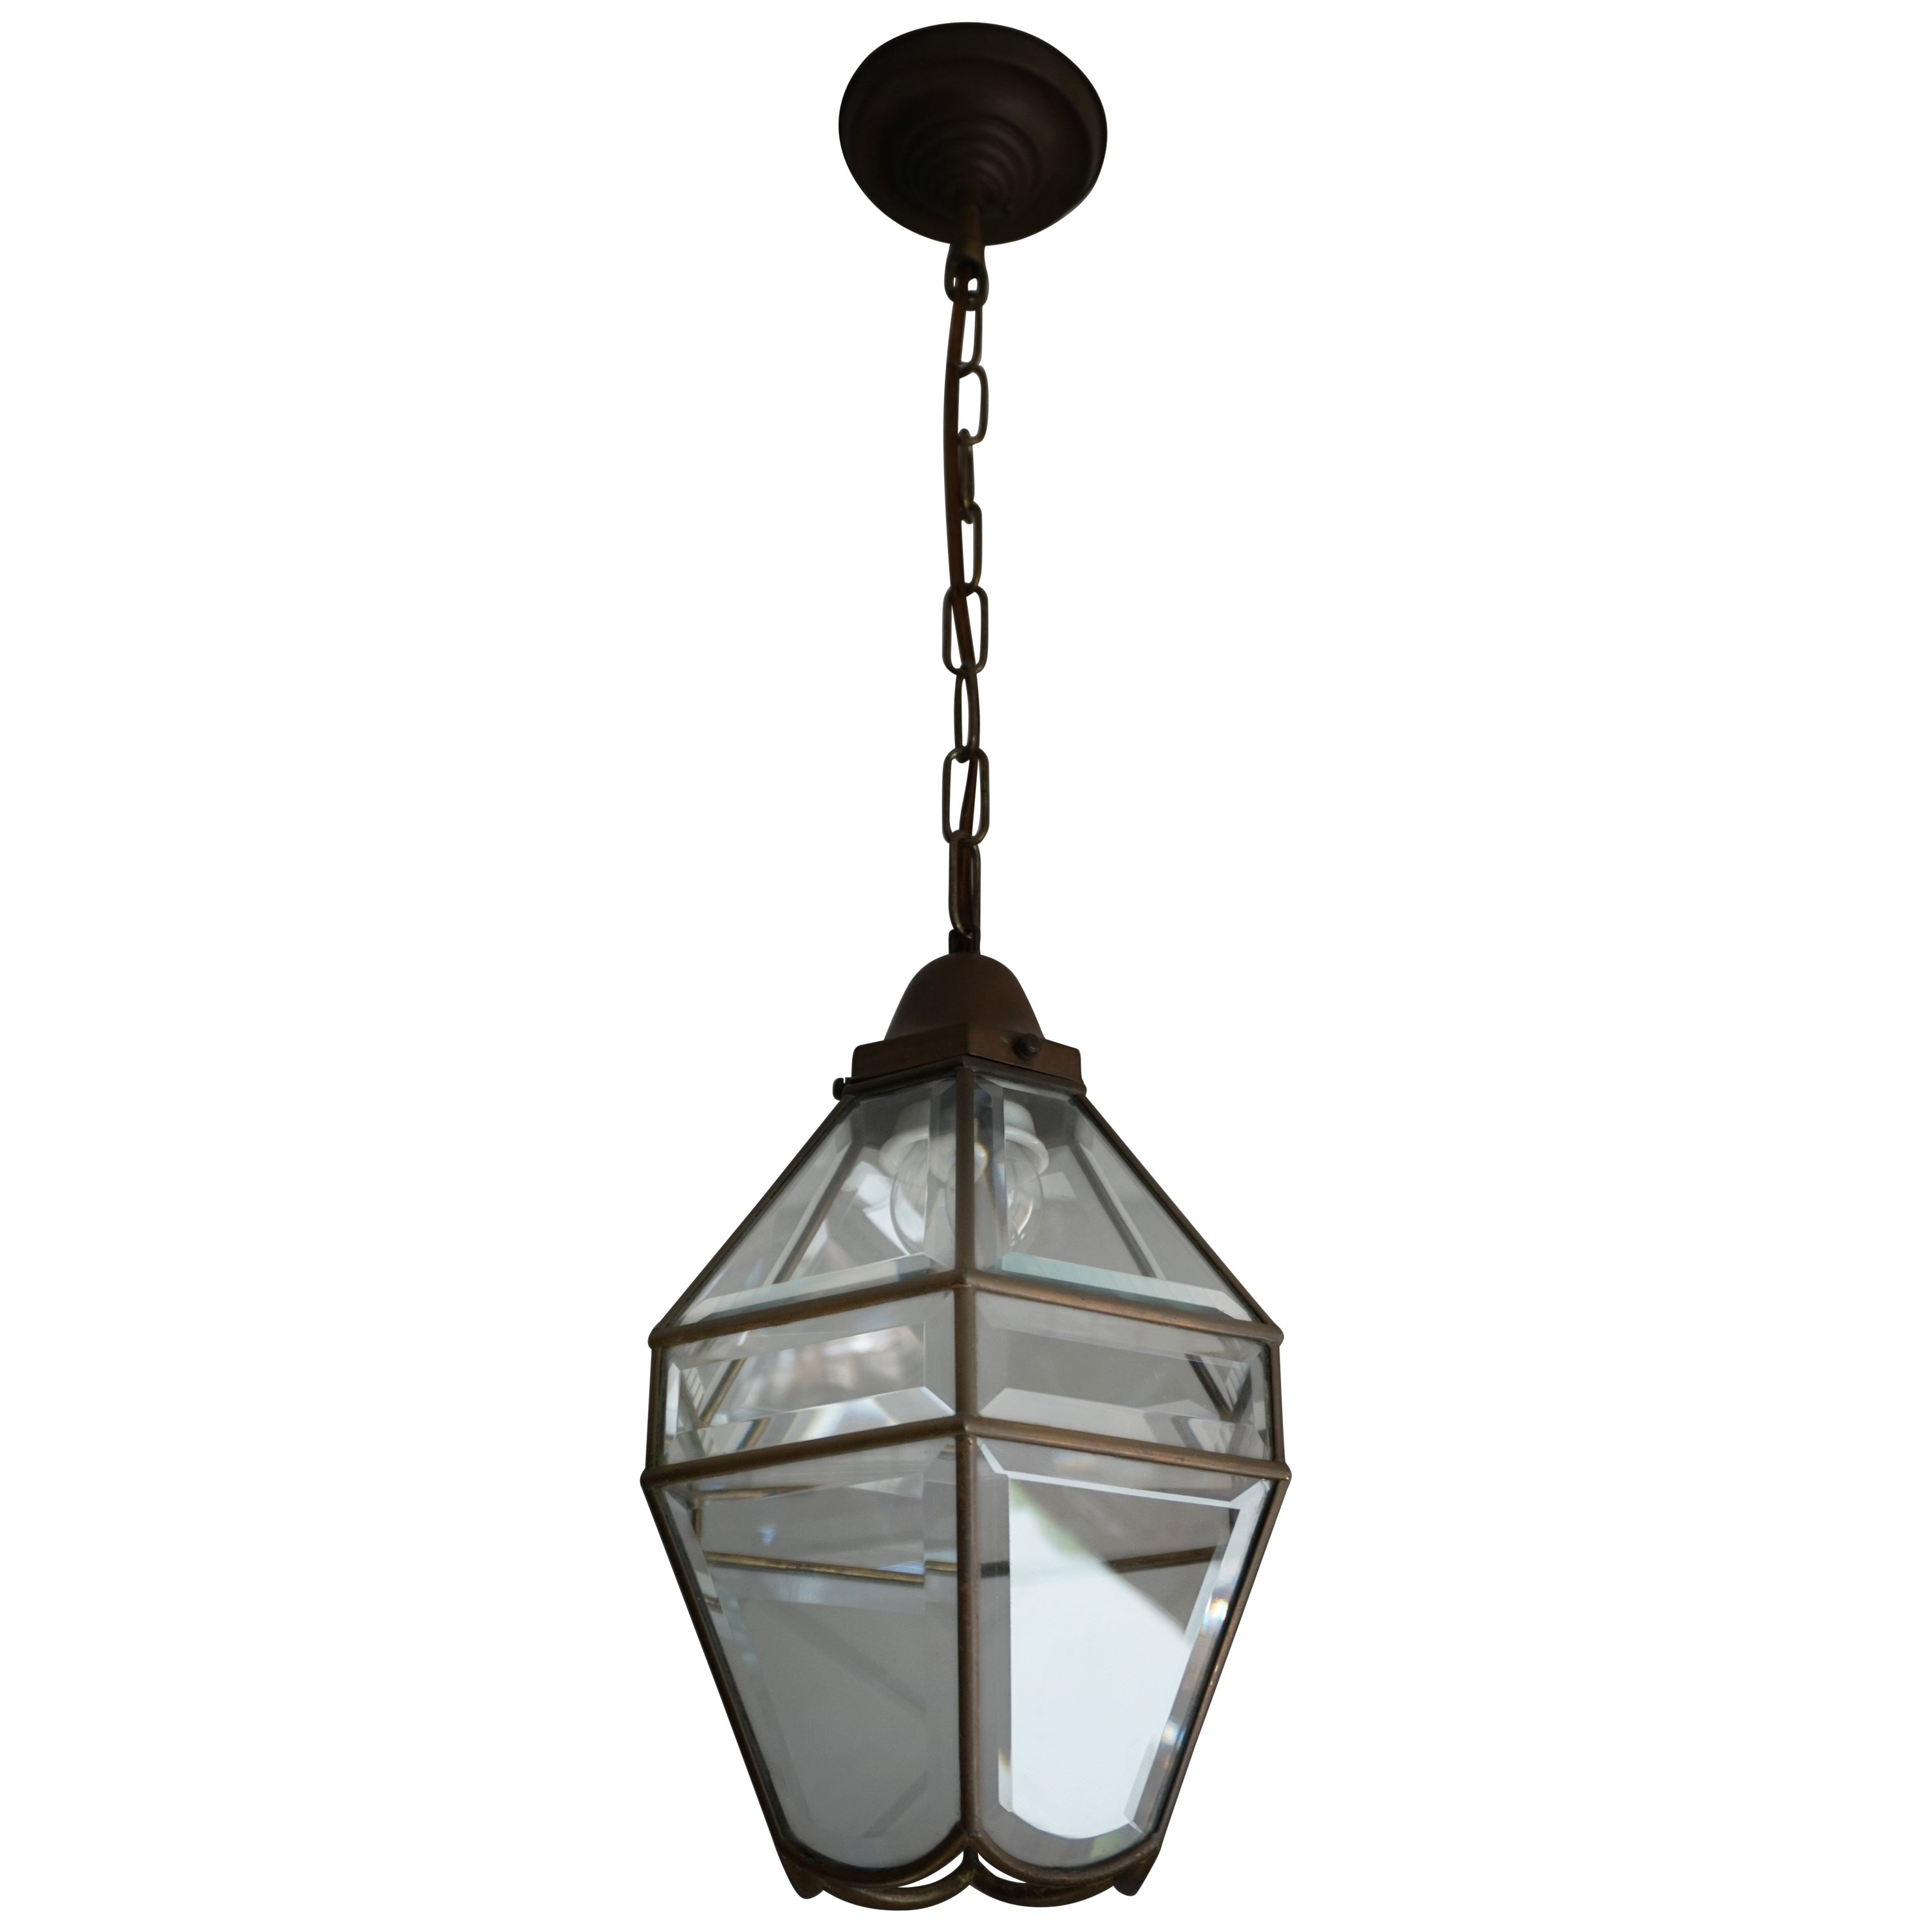 Stylish Arts & Crafts Brass and Beveled Glass Pendant Light in Adolf Loos Style